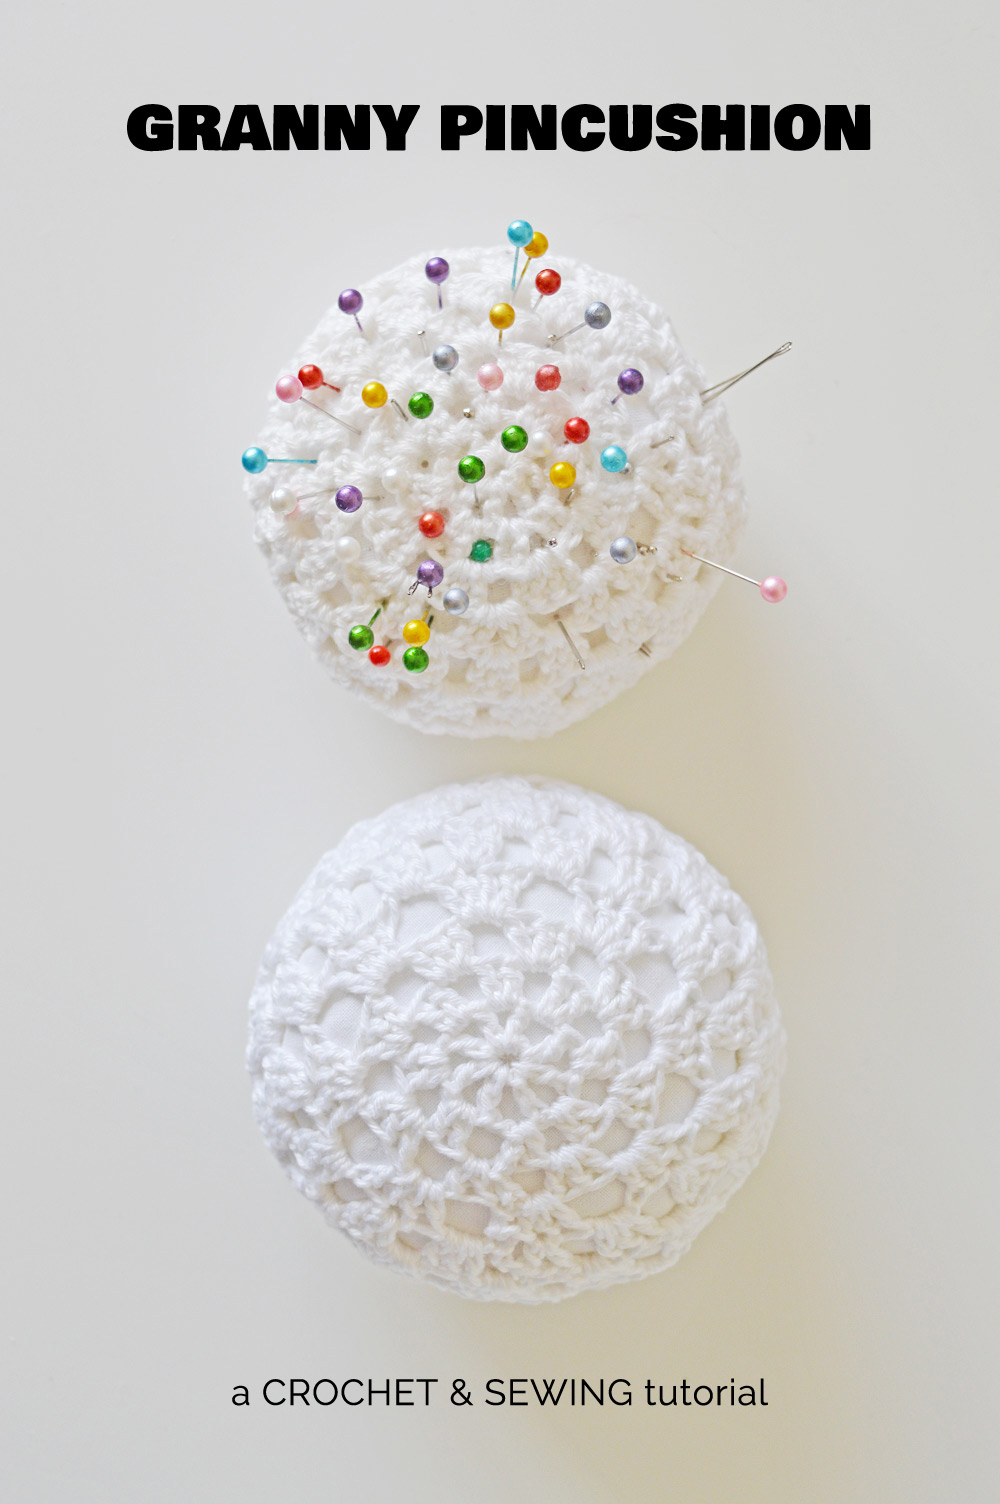 DIY crochet pincushion tutorial + pattern